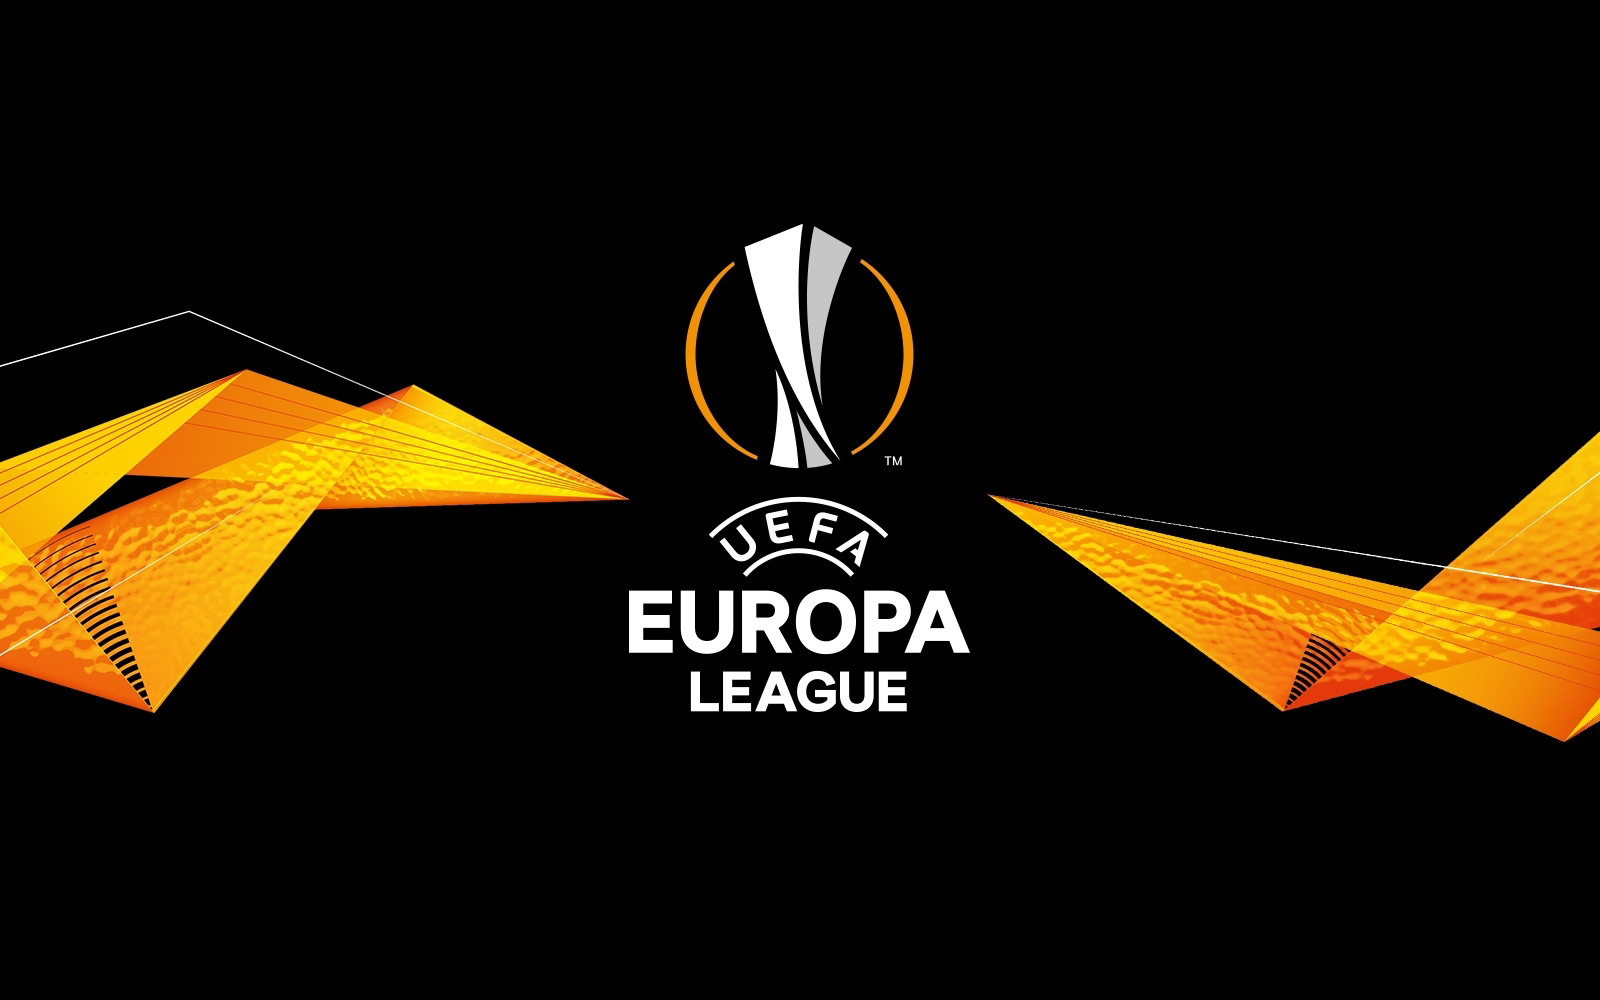 Expert says Celtic will be unseeded in Europa League qualifier